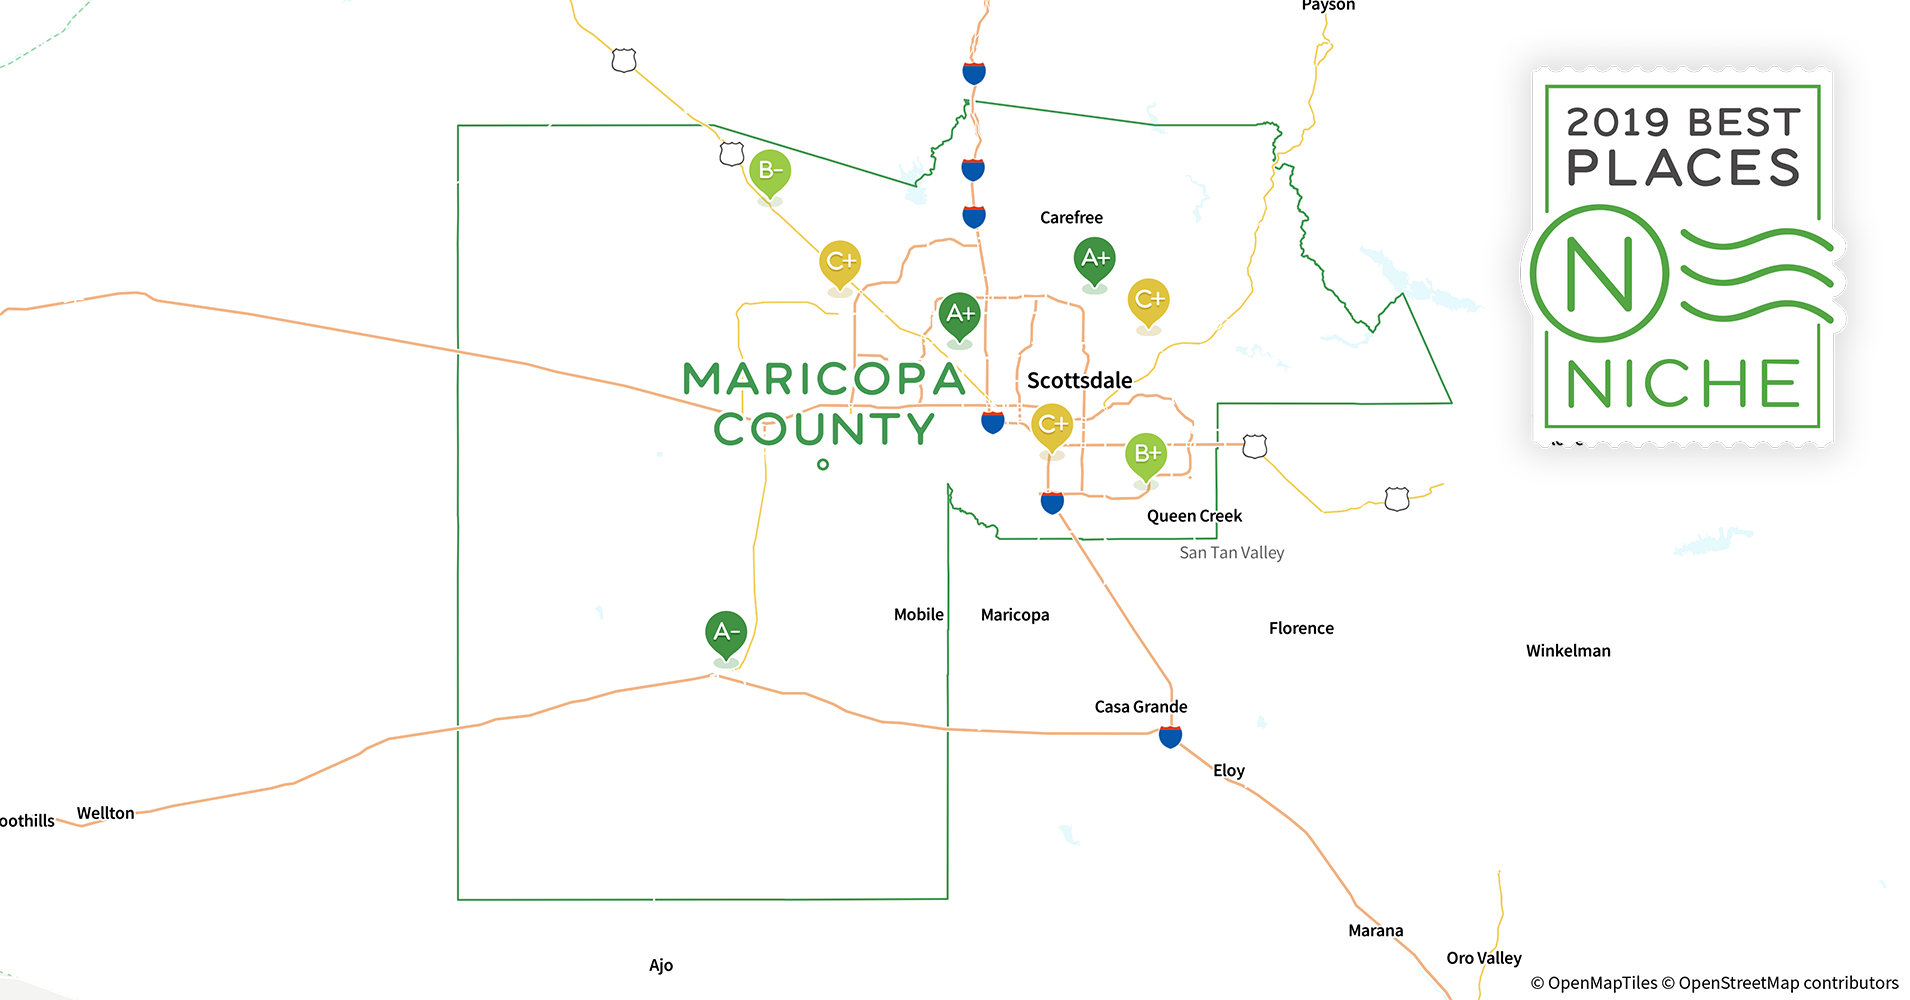 2019 Best Places to Live in Maricopa County, AZ - Niche